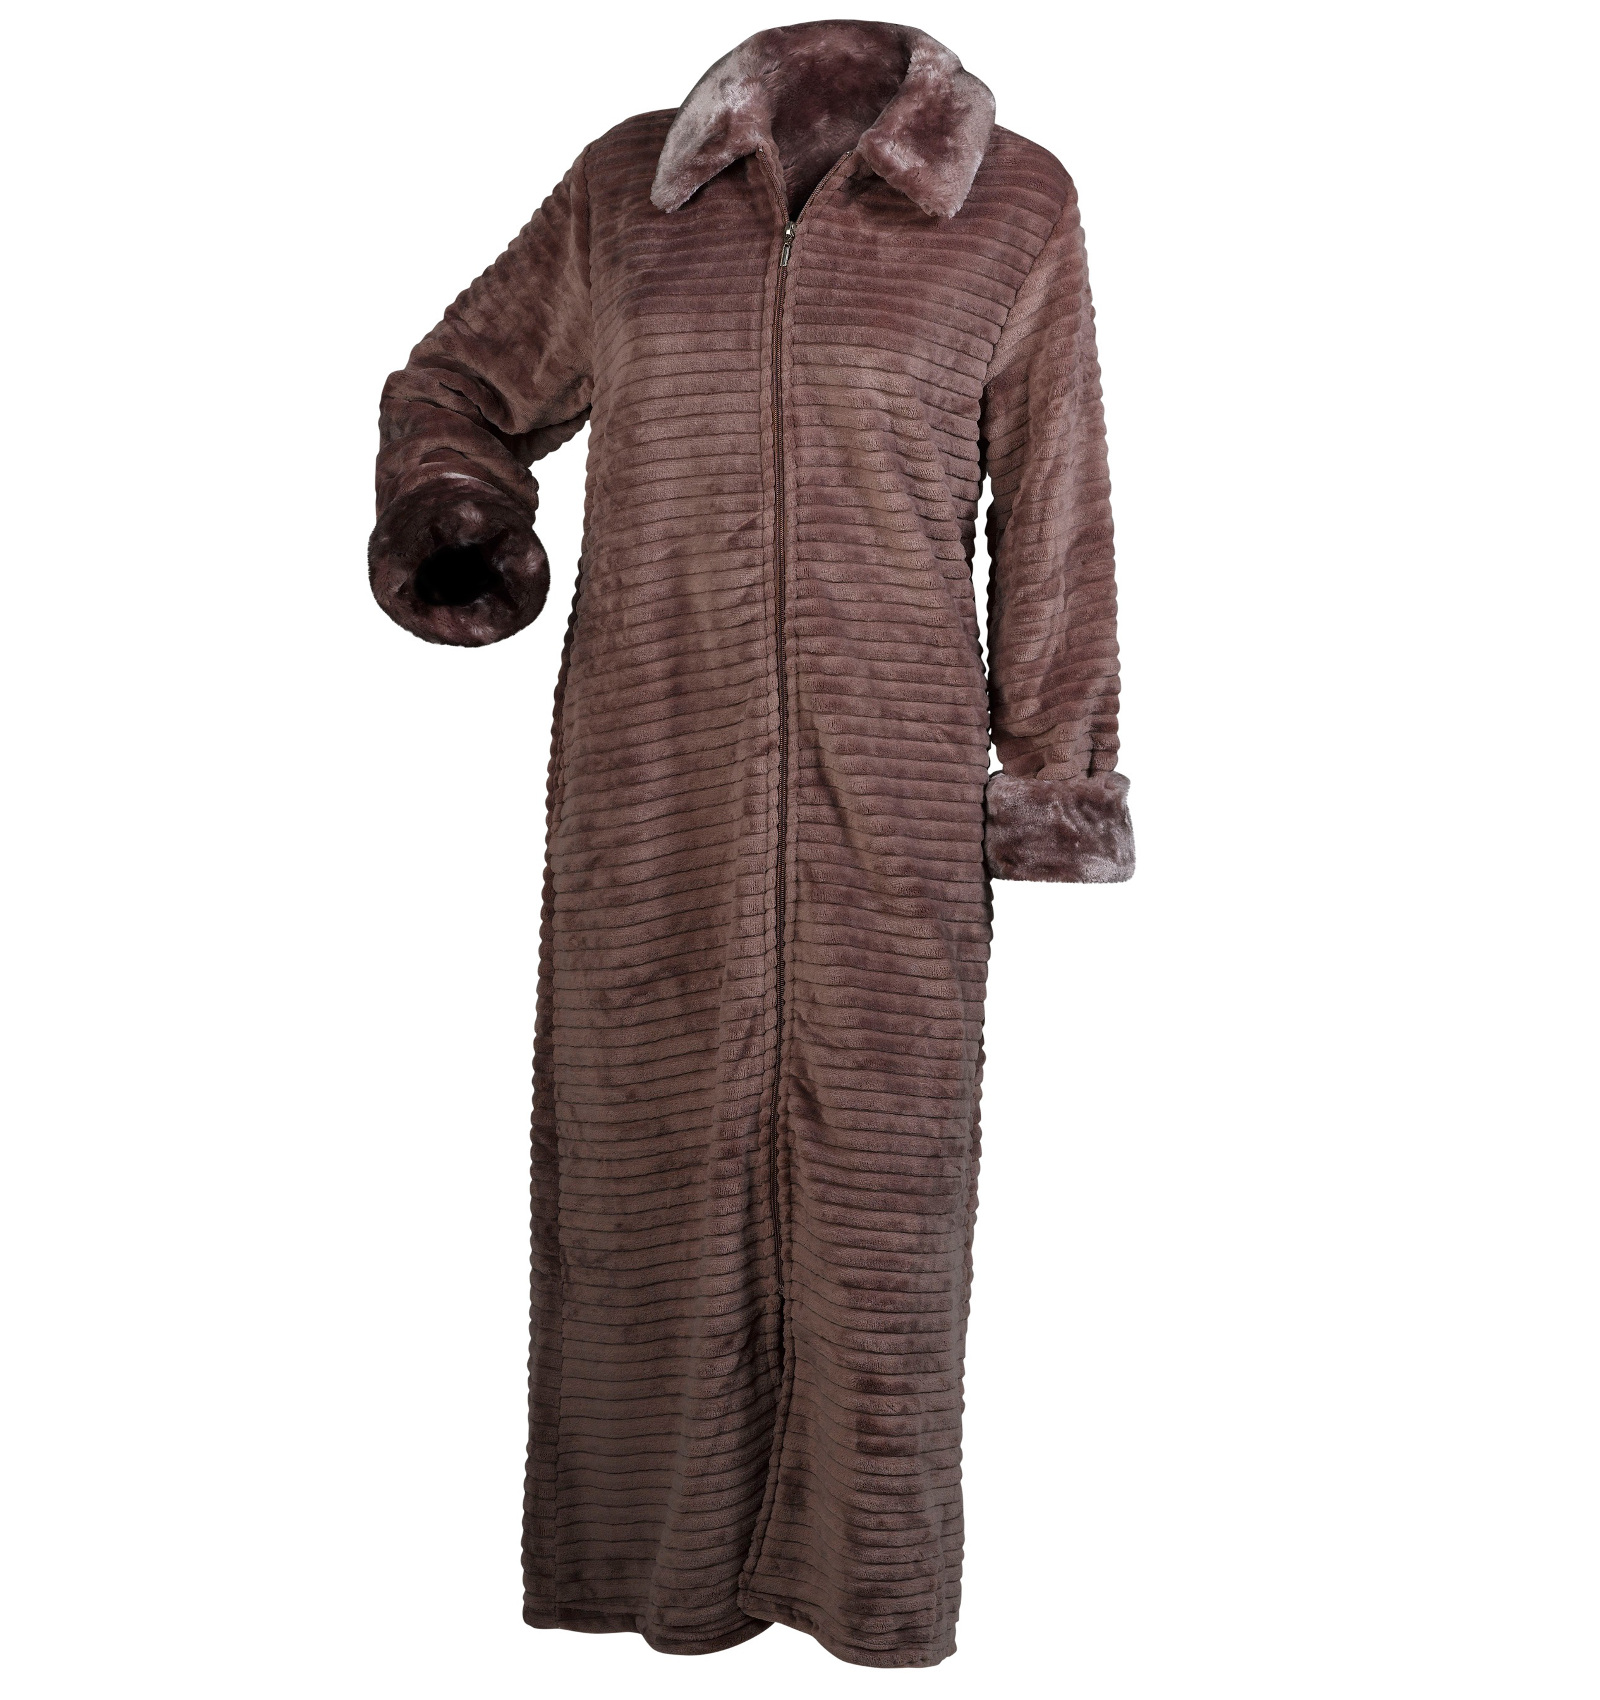 Slenderella Ladies Ribbed Dressing Gown Button Zip Wrap Faux Fur